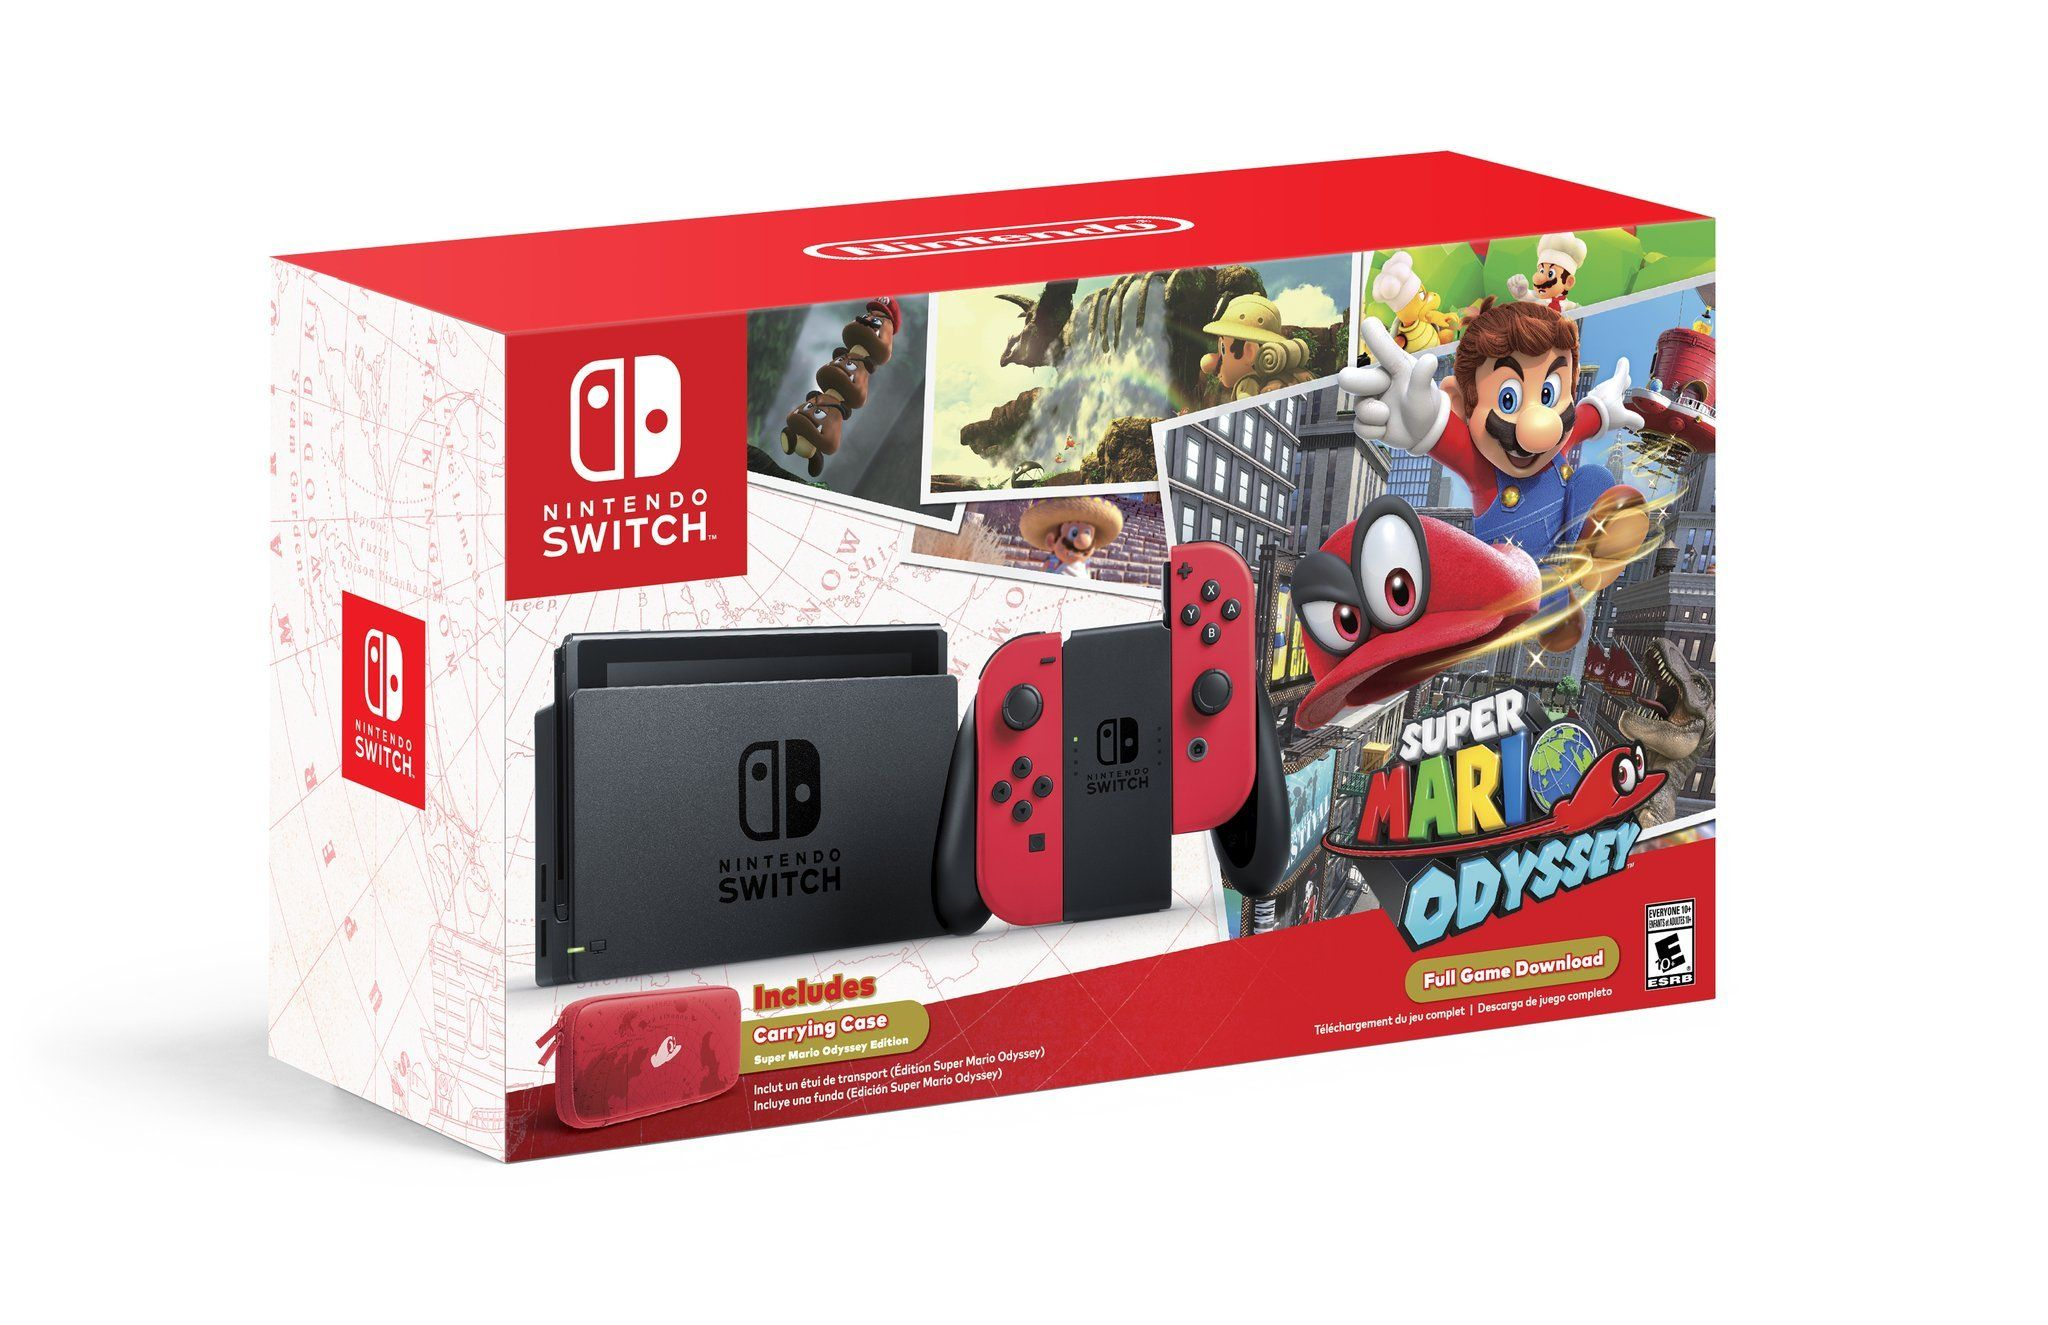 Super Mario Odyssey Gets A Nintendo Switch Bundle With Red Joy Cons Carrying Case Nintendo Switch Super Mario Mario Switch Nintendo Switch System